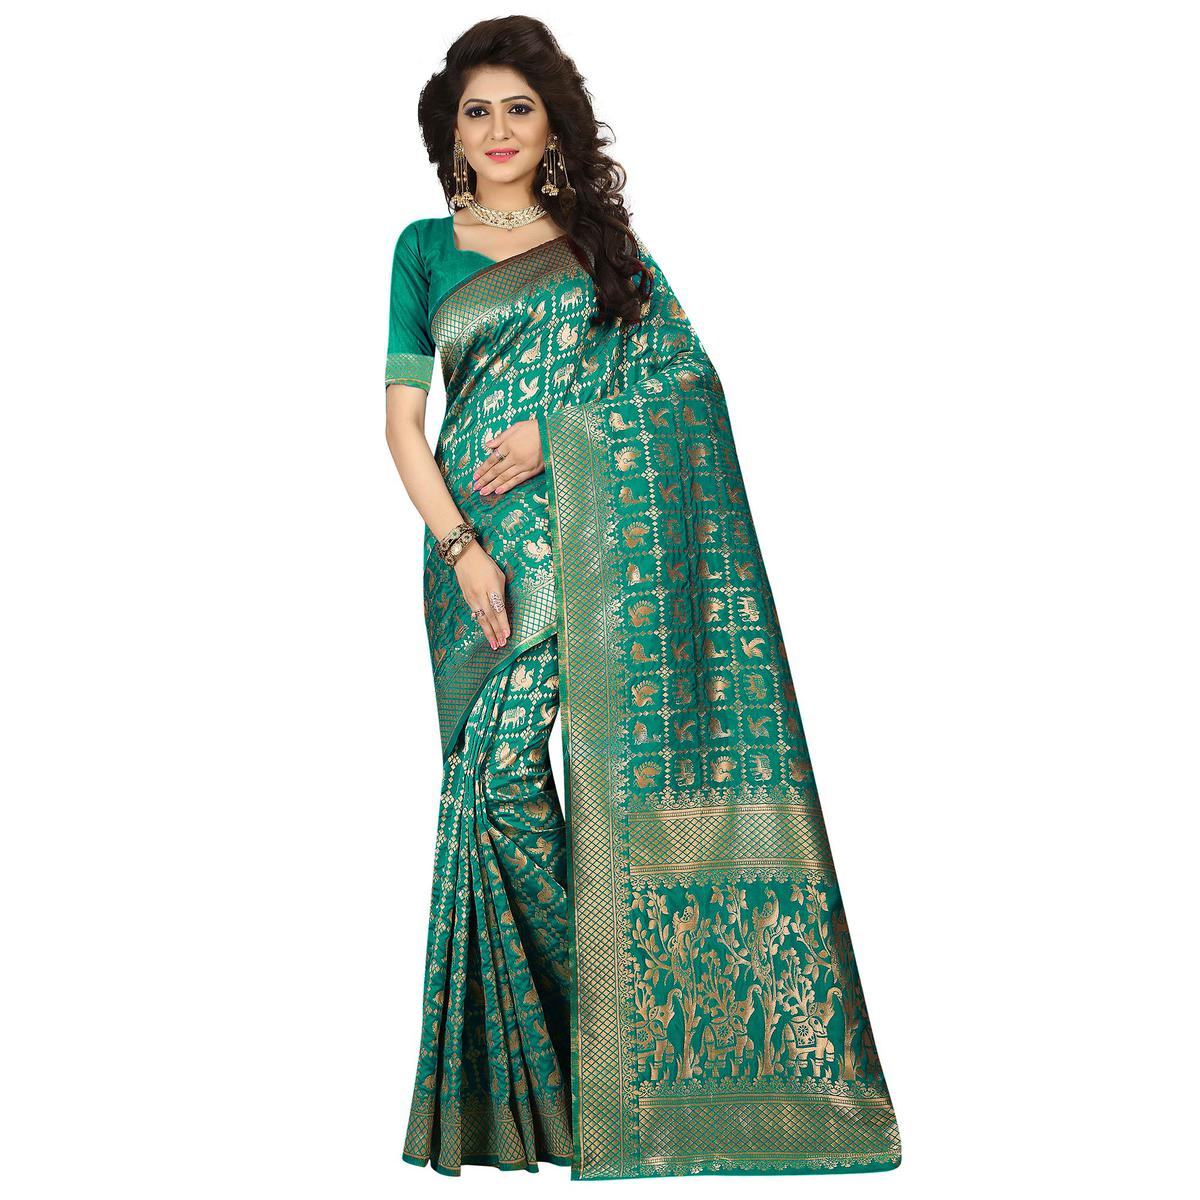 Lovely Green Colored Festive Wear Woven Jacquard Art Silk Saree